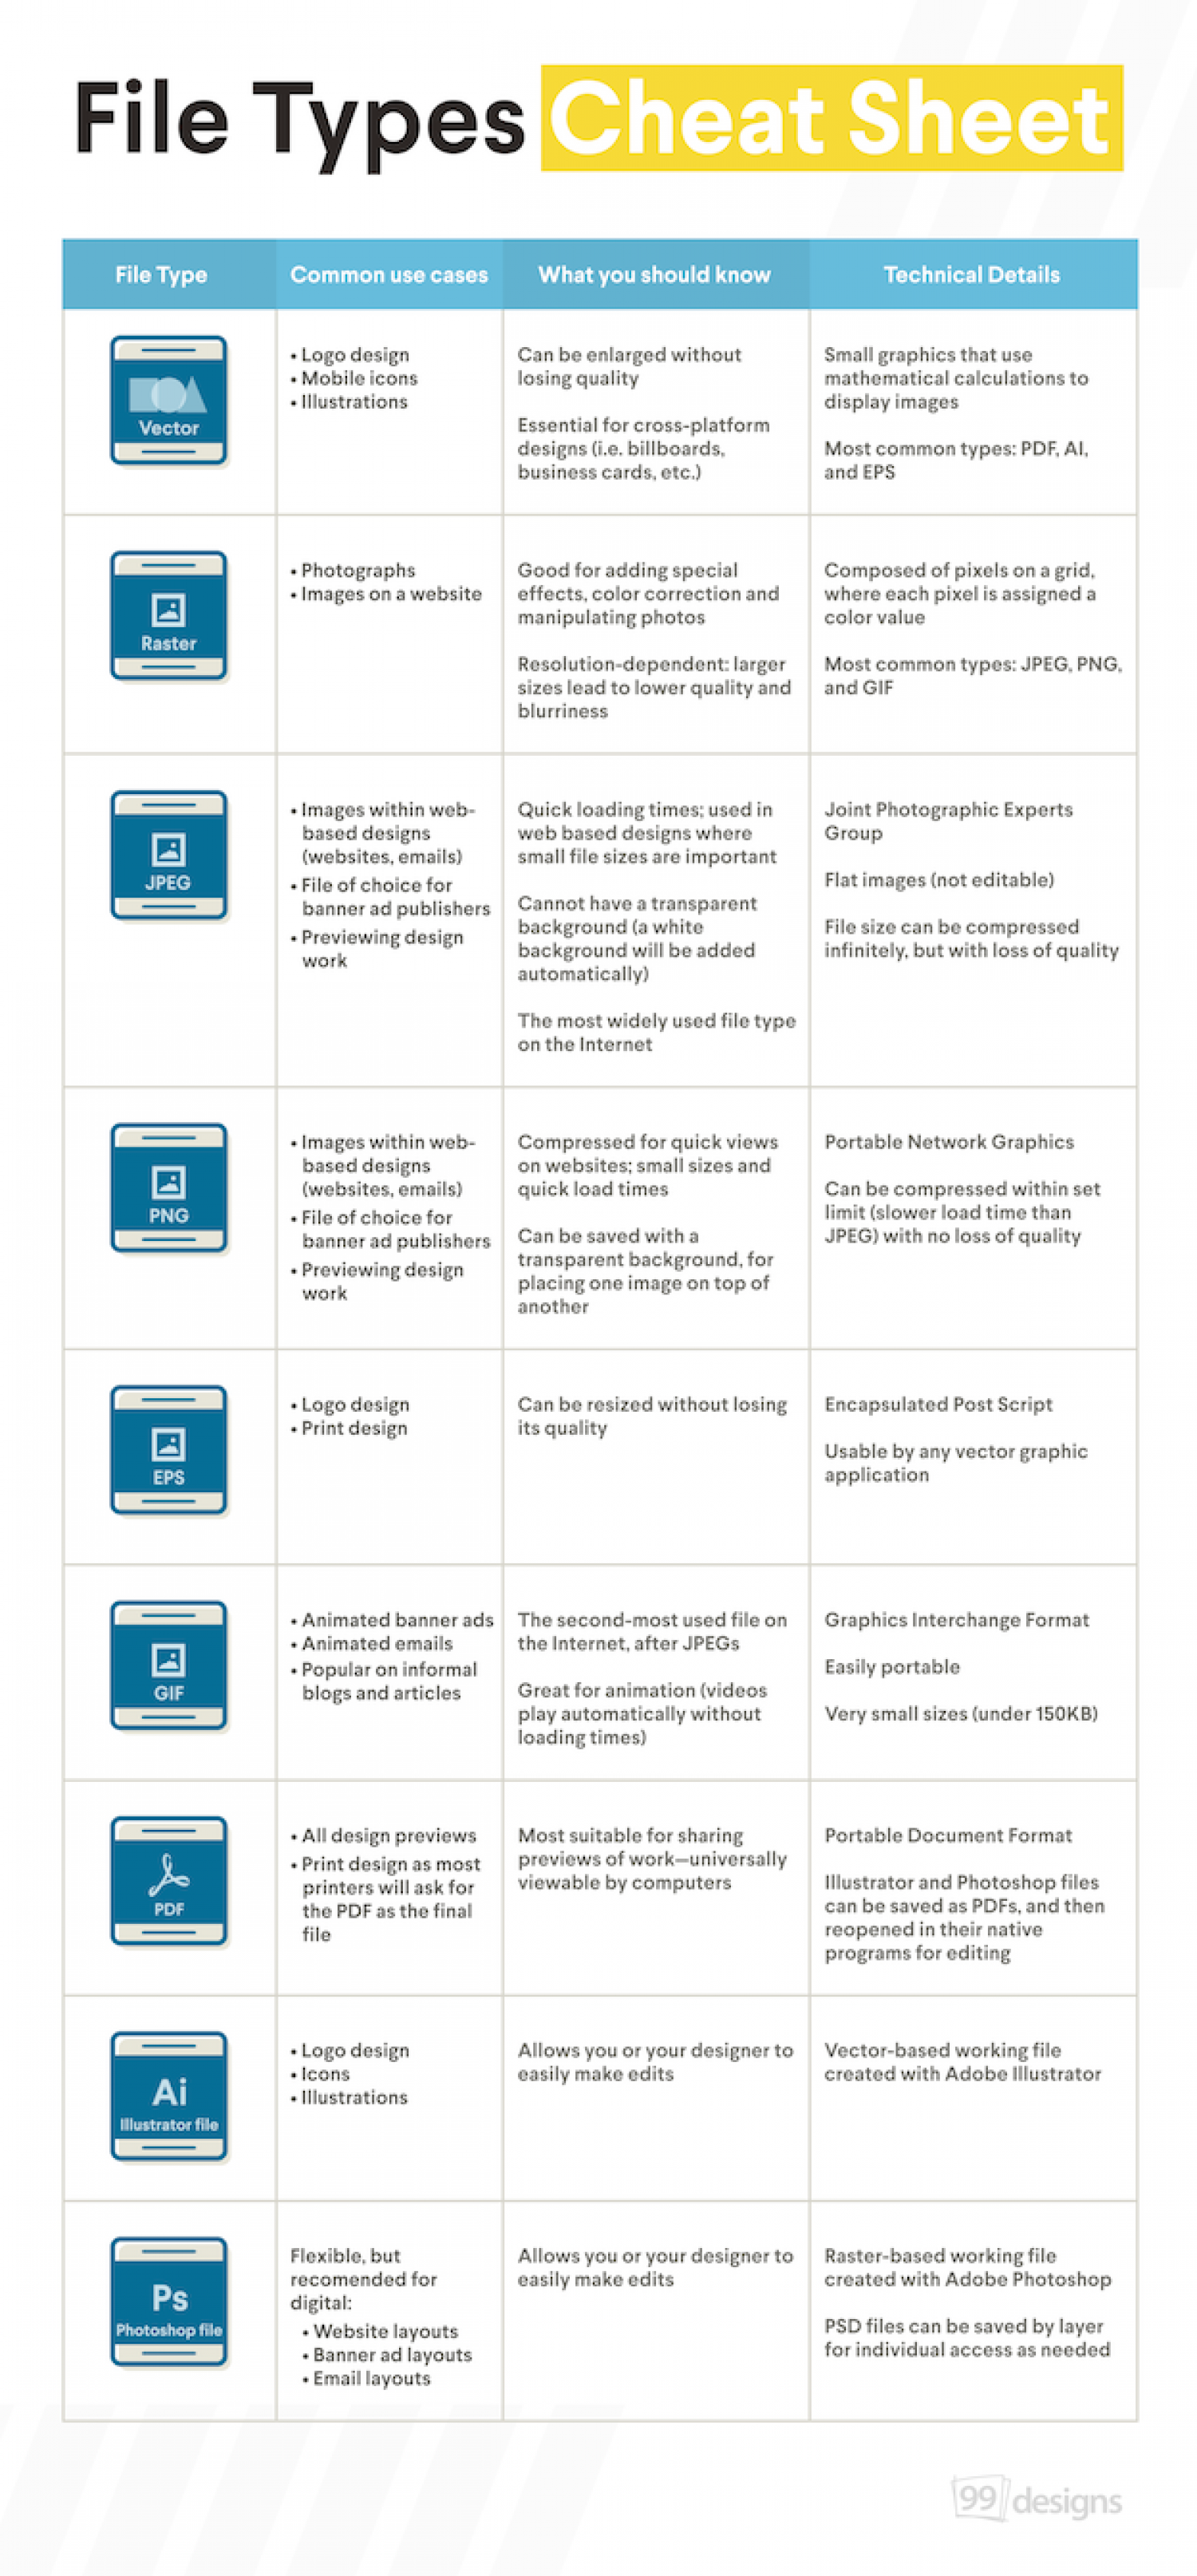 File Types Cheat Sheet Infographic